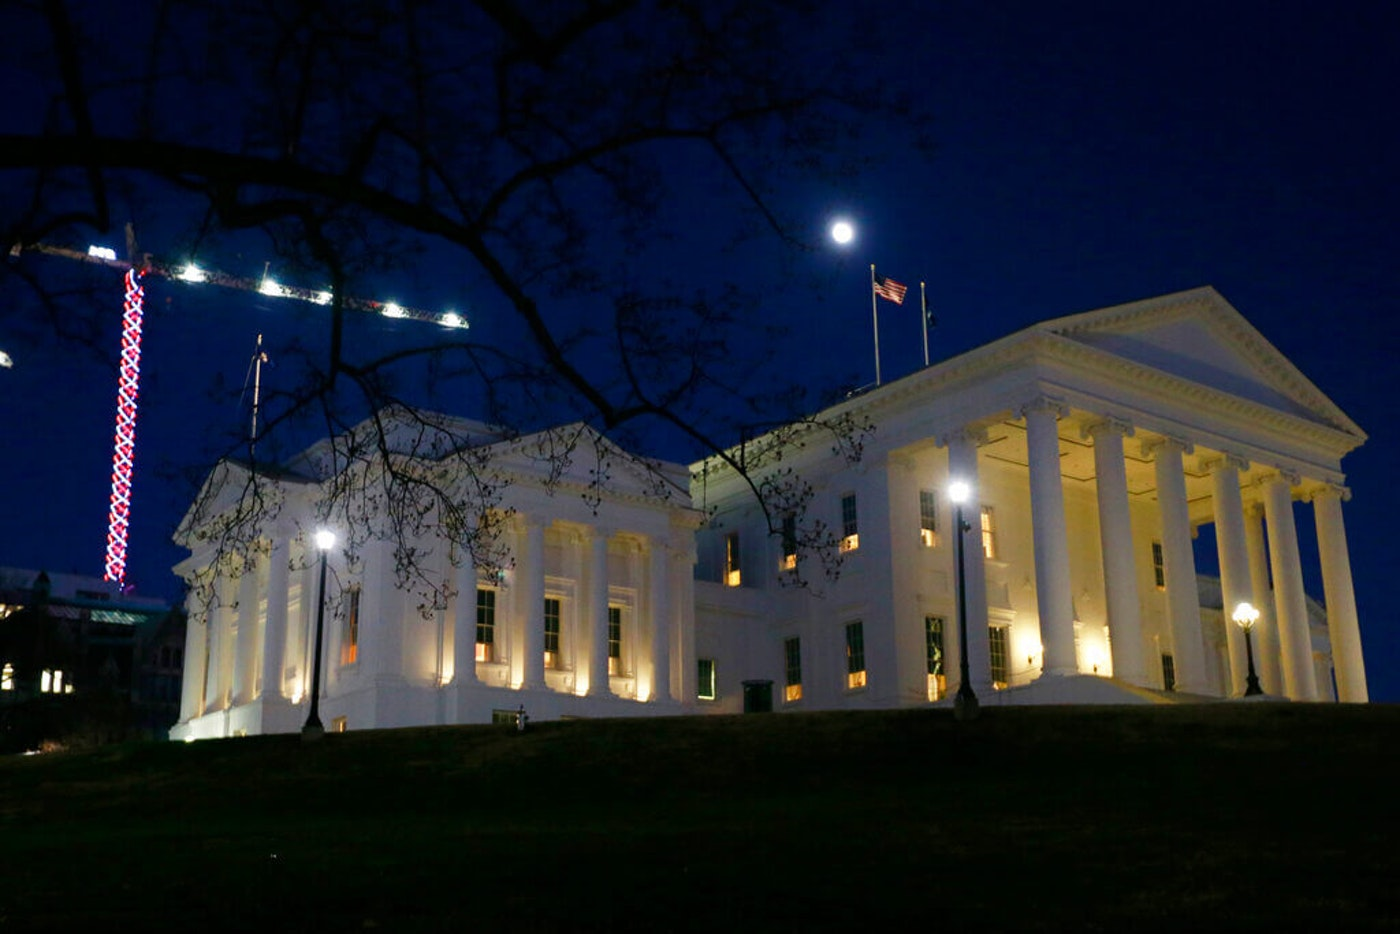 The moon rises over the Virginia state Capitol in Richmond, Va., Wednesday, Jan. 8, 2020. (AP Photo/Steve Helber)